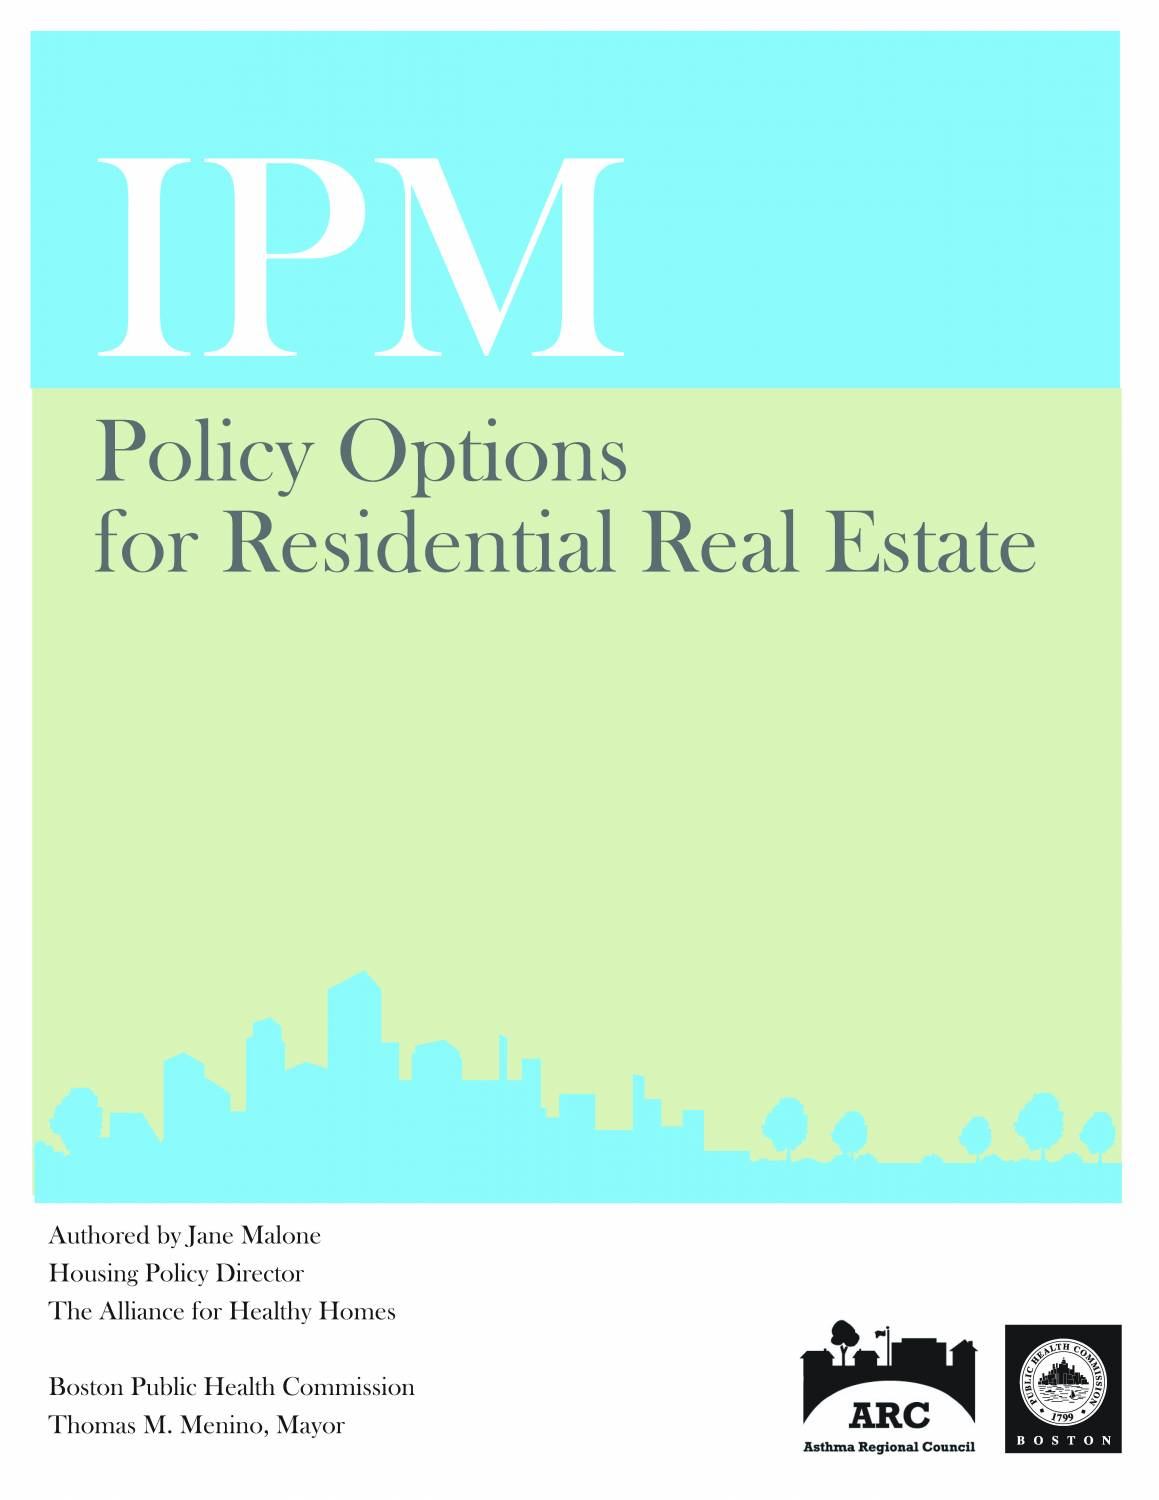 IPM Policy Options for Residential Real Estate